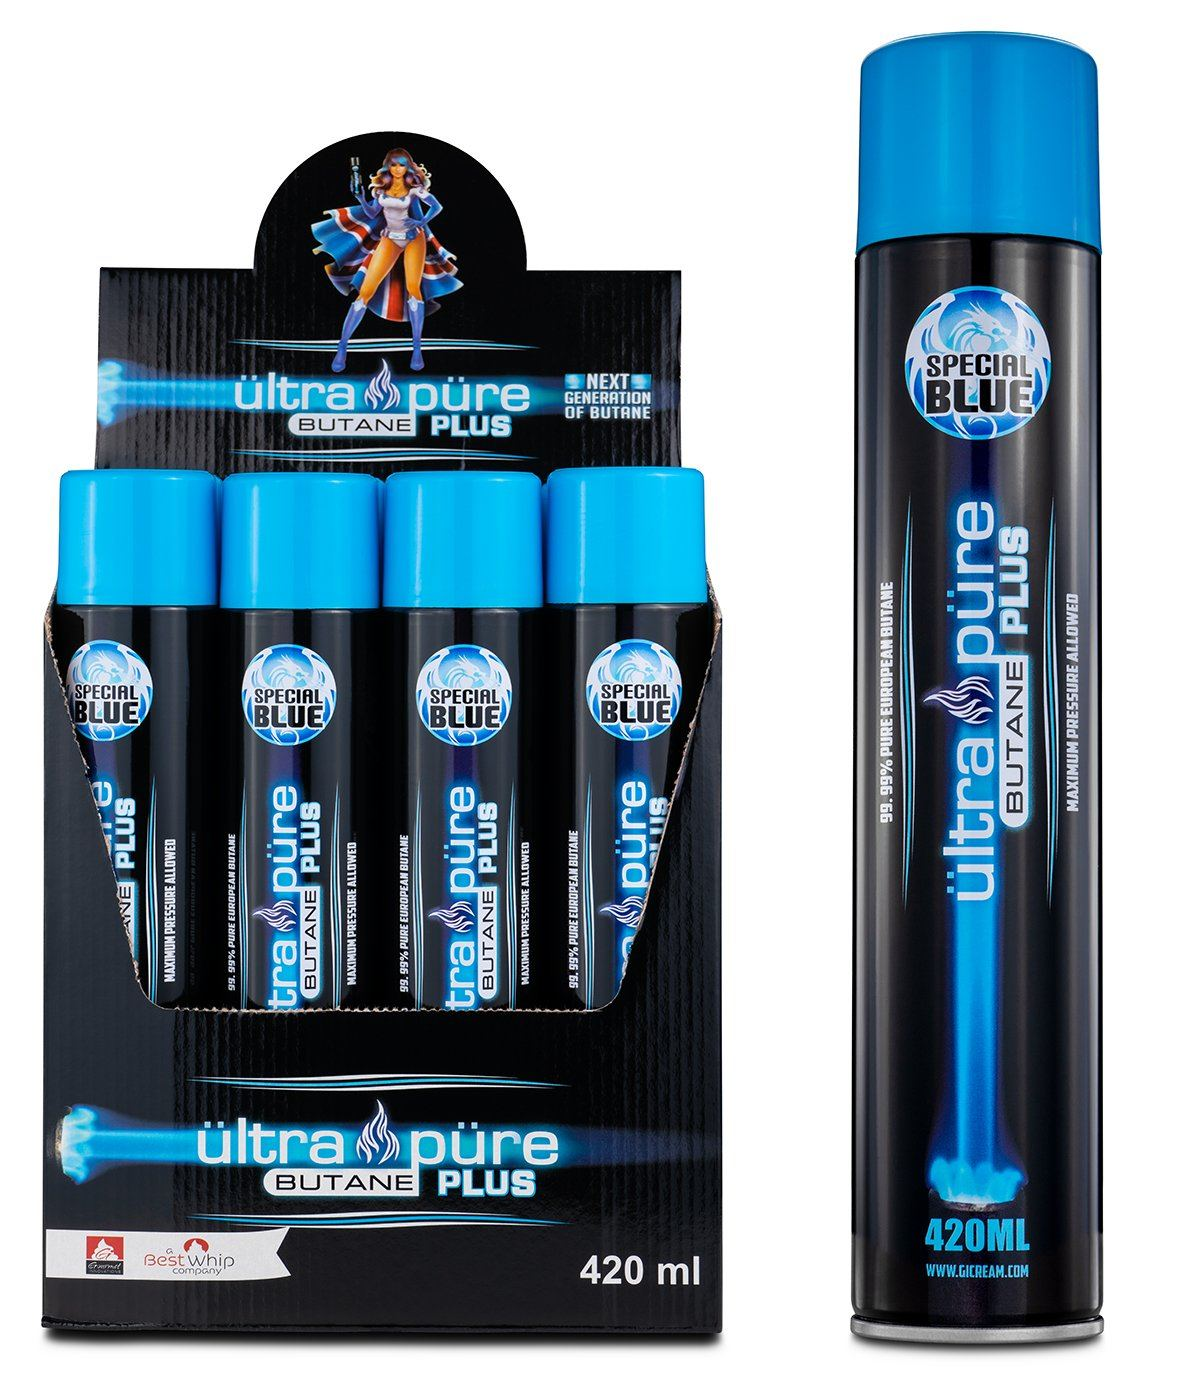 Ultra Pure PLUS 420ML Butane Shop All Categories Ultra Pure PLUS MasterCase - 72 Cans